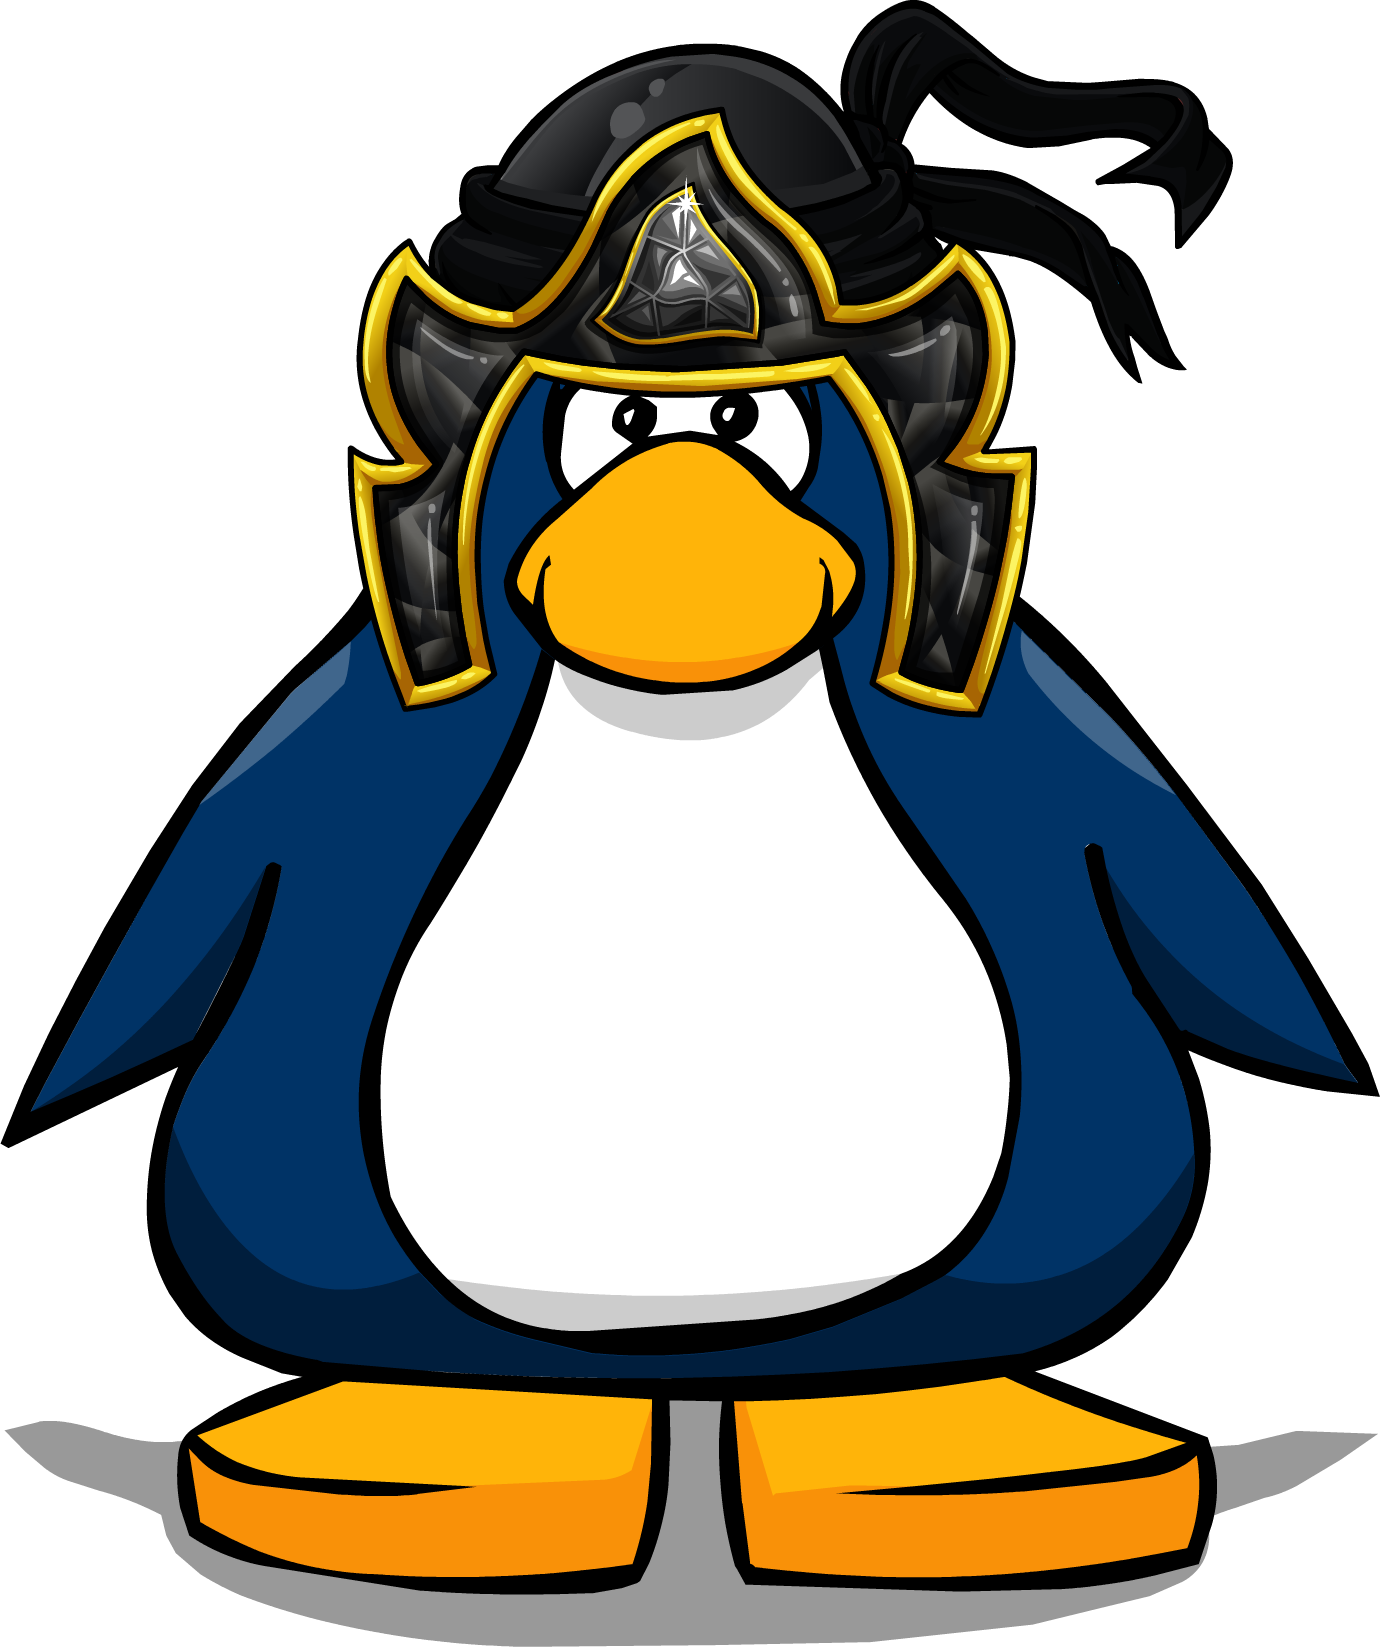 File:Helmet of Shadows on Player Card.png